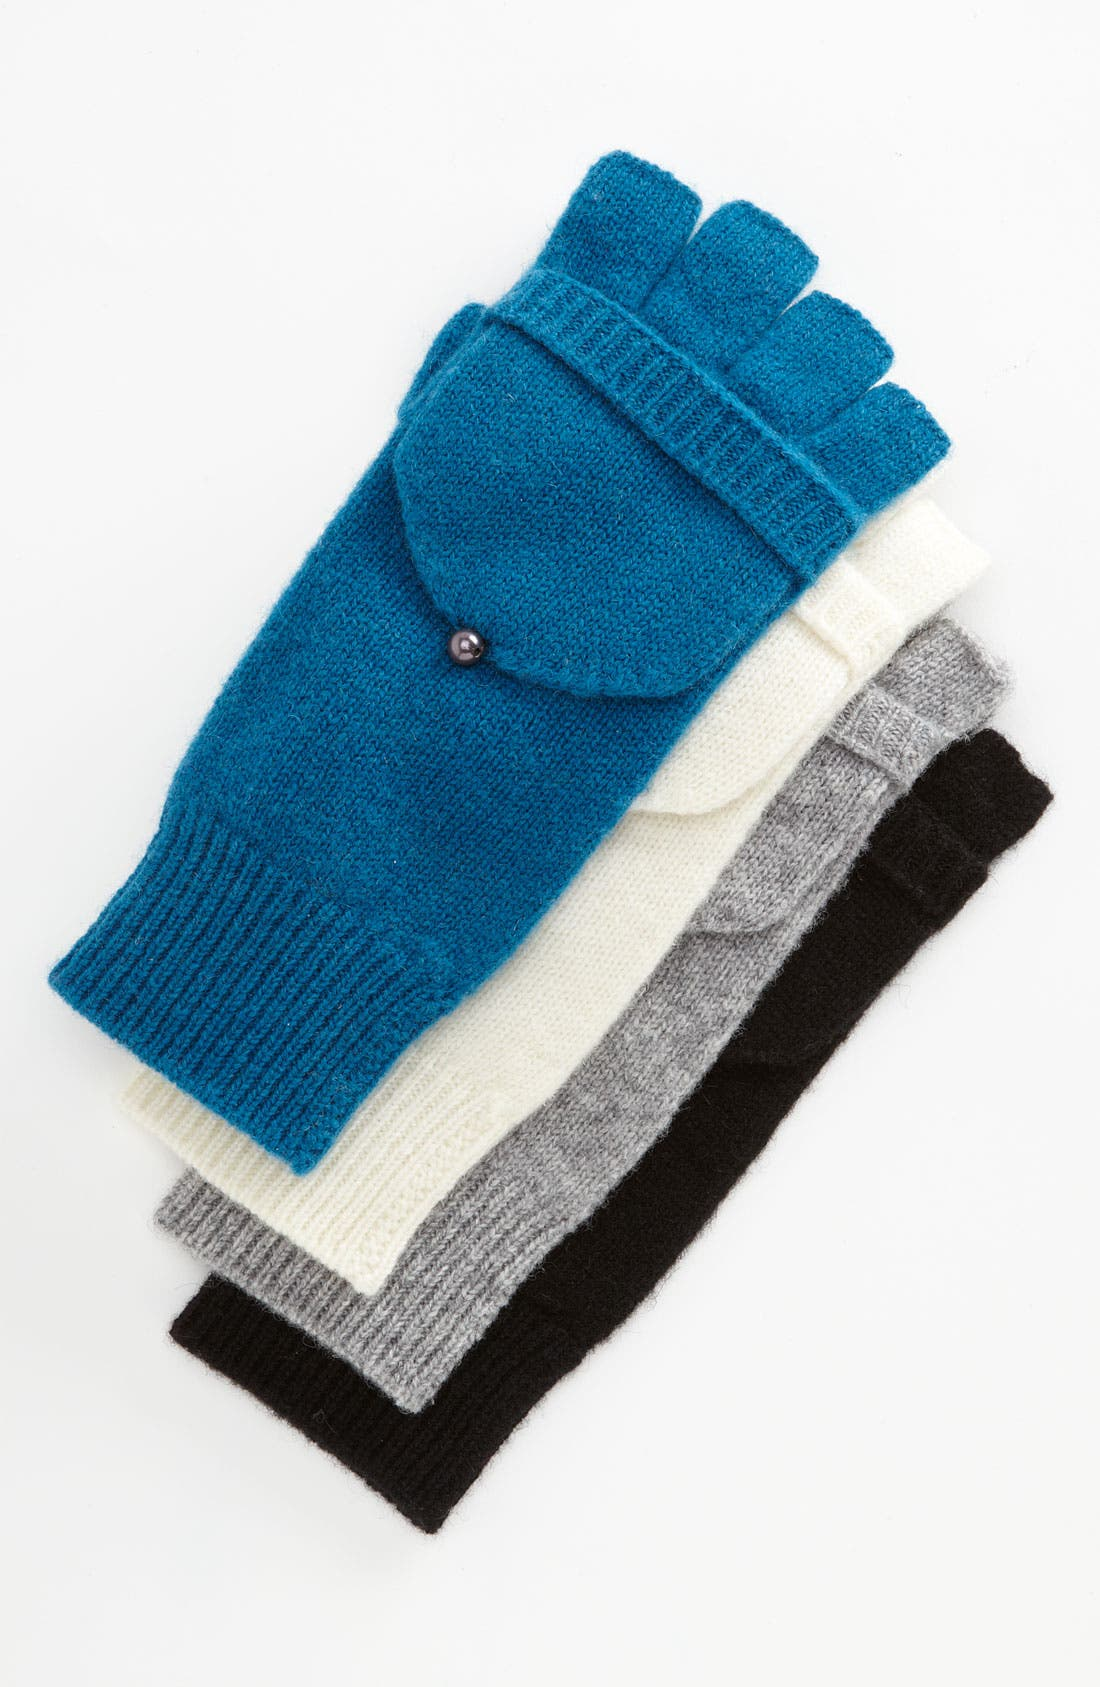 Alternate Image 1 Selected - Laundry by Shelli Segal Convertible Knit Mittens